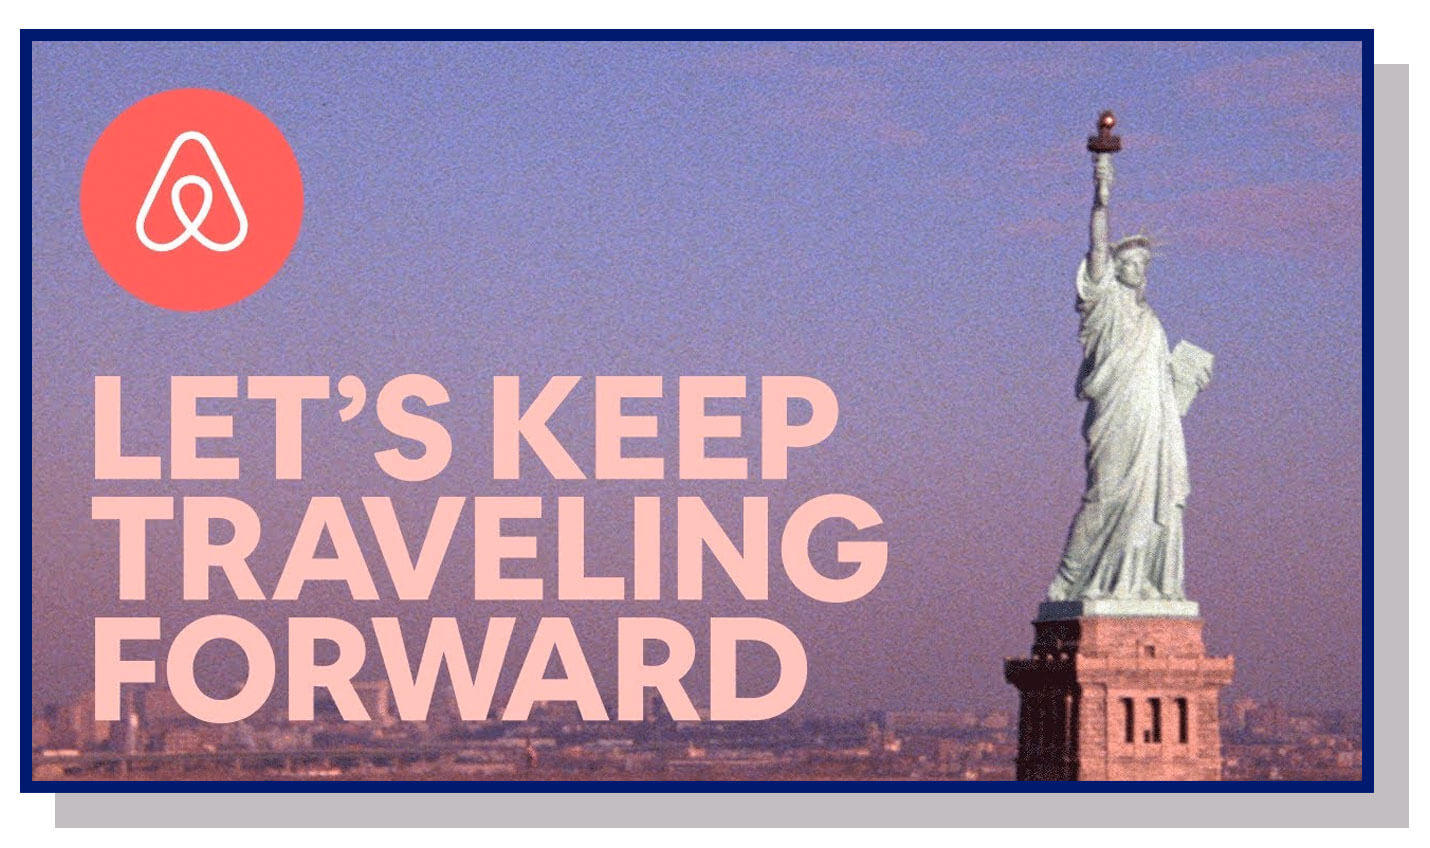 let's keep traveling forward airbnb campaign in response to President Donald Trump's travel ban